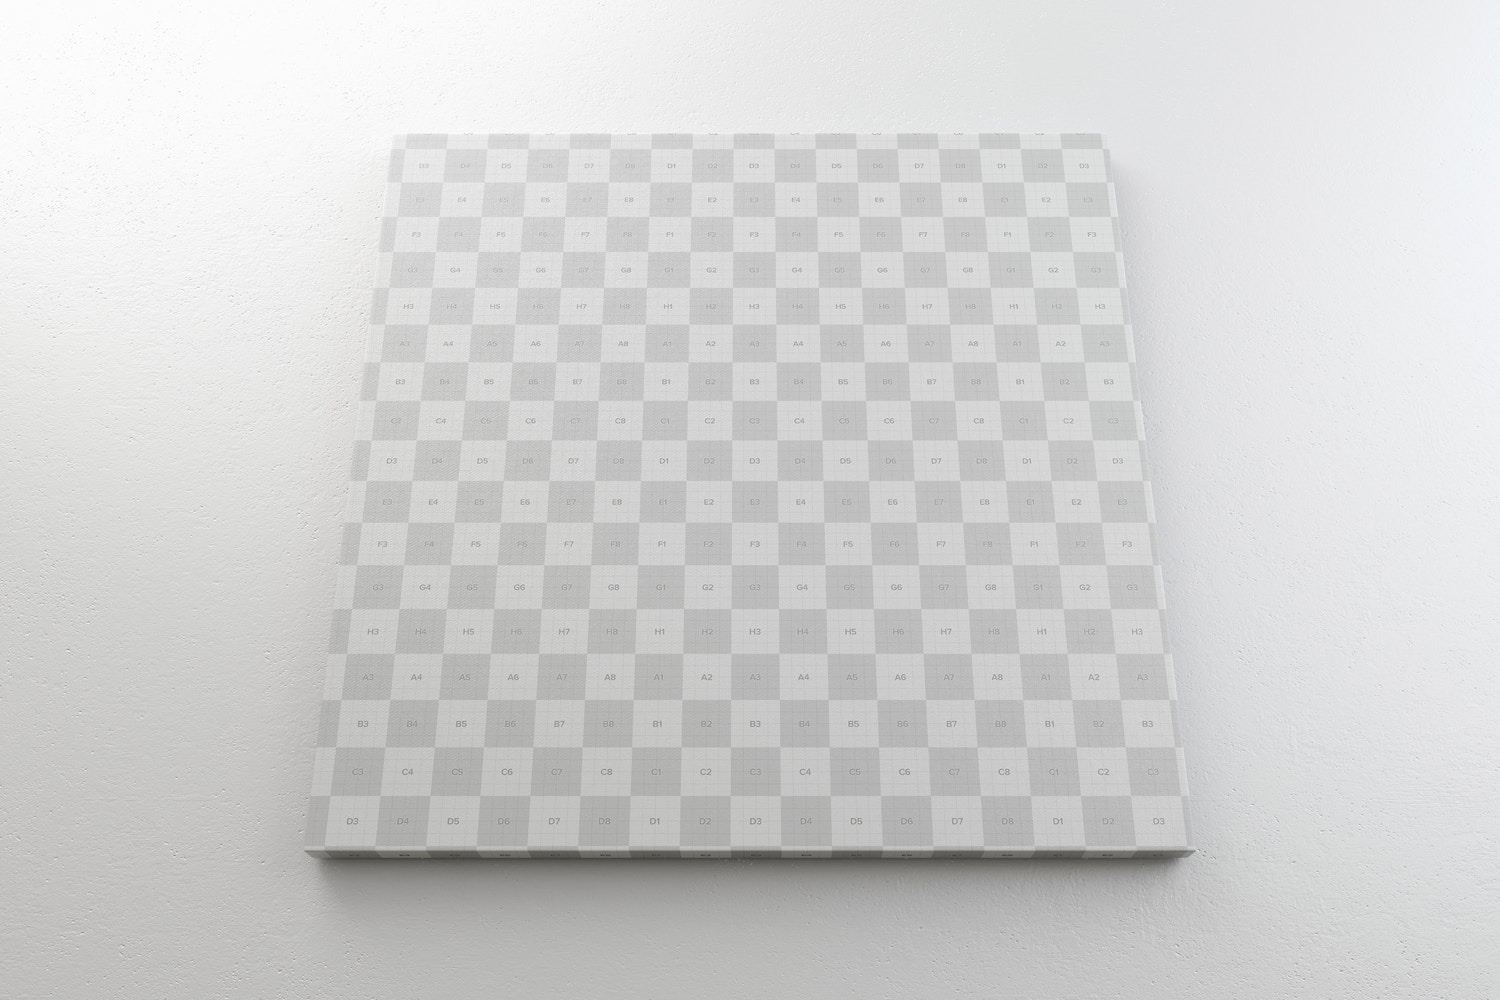 Square Canvas Mockup Hanging on Wall, Bottom Front View